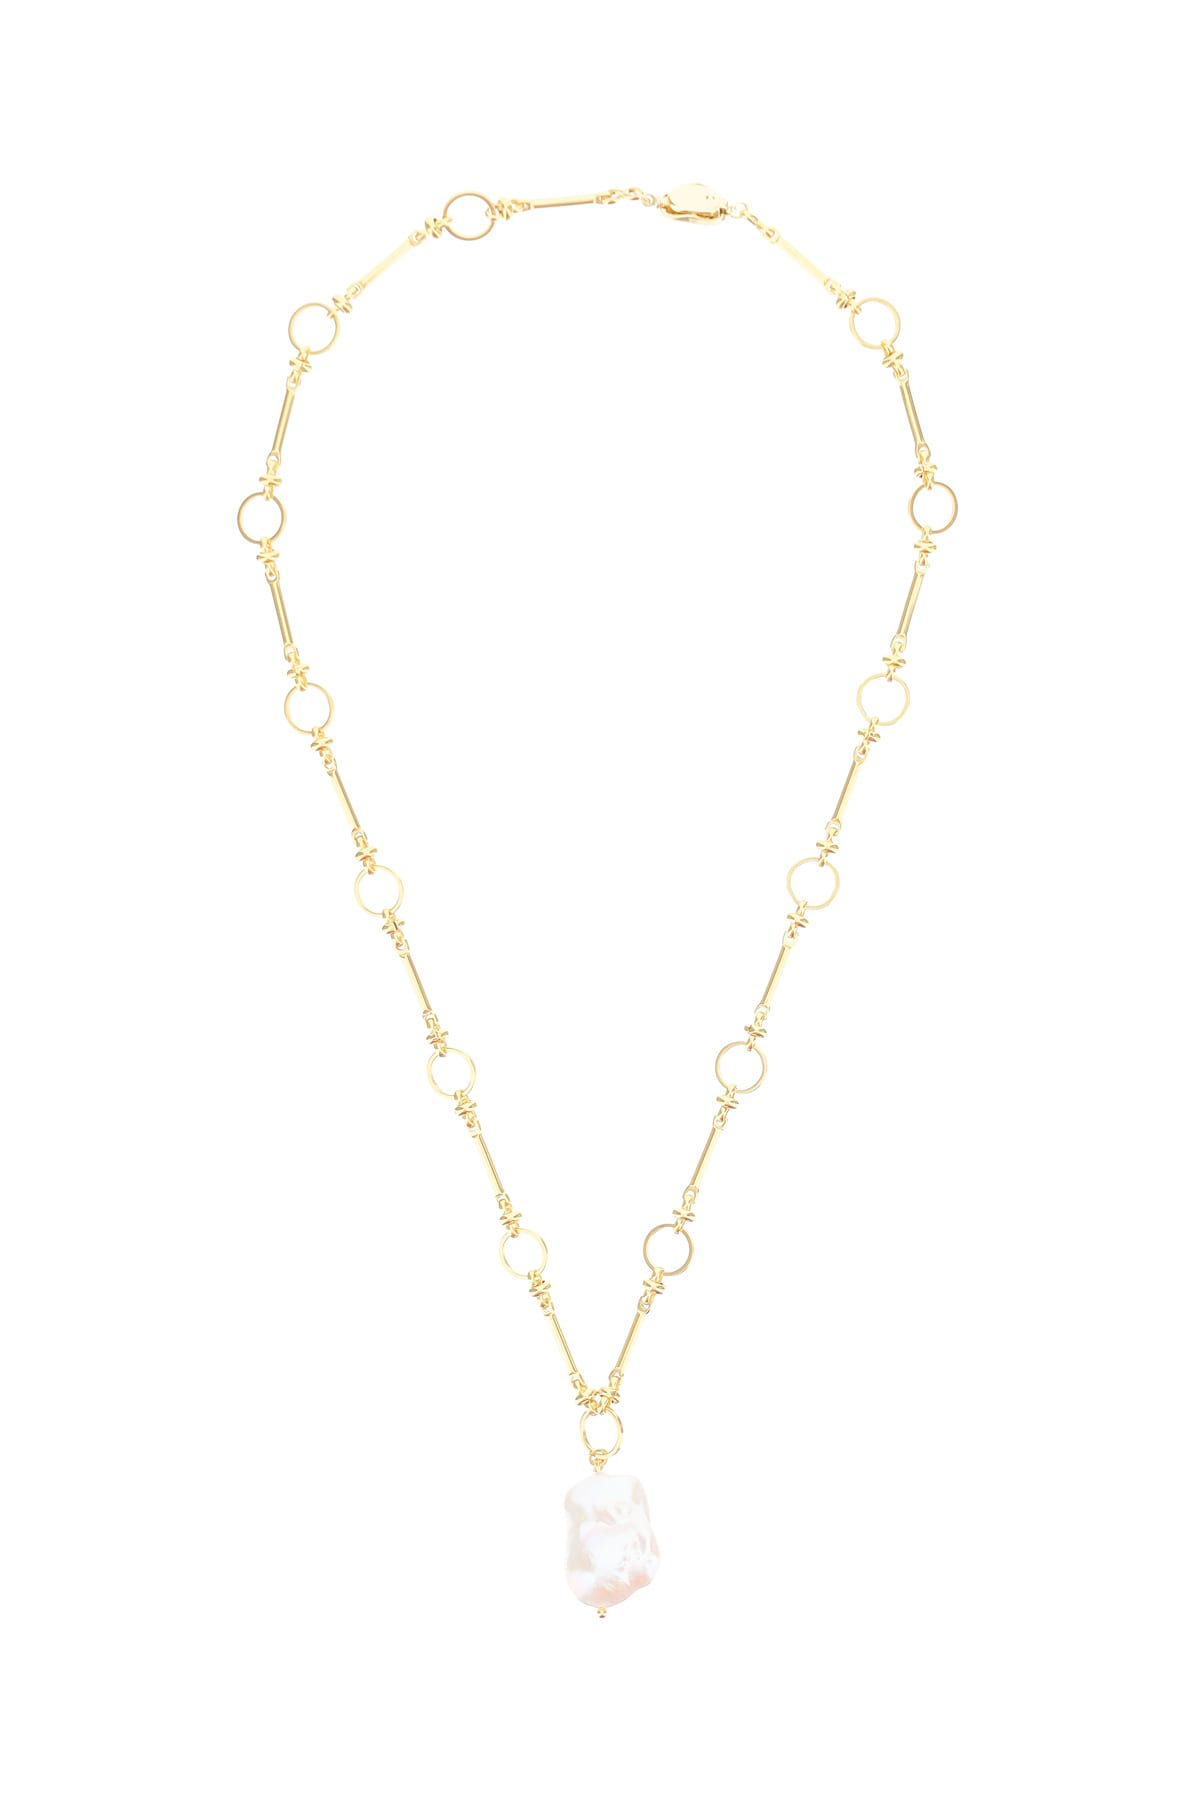 Timeless Pearly Chain Necklace With Pearl